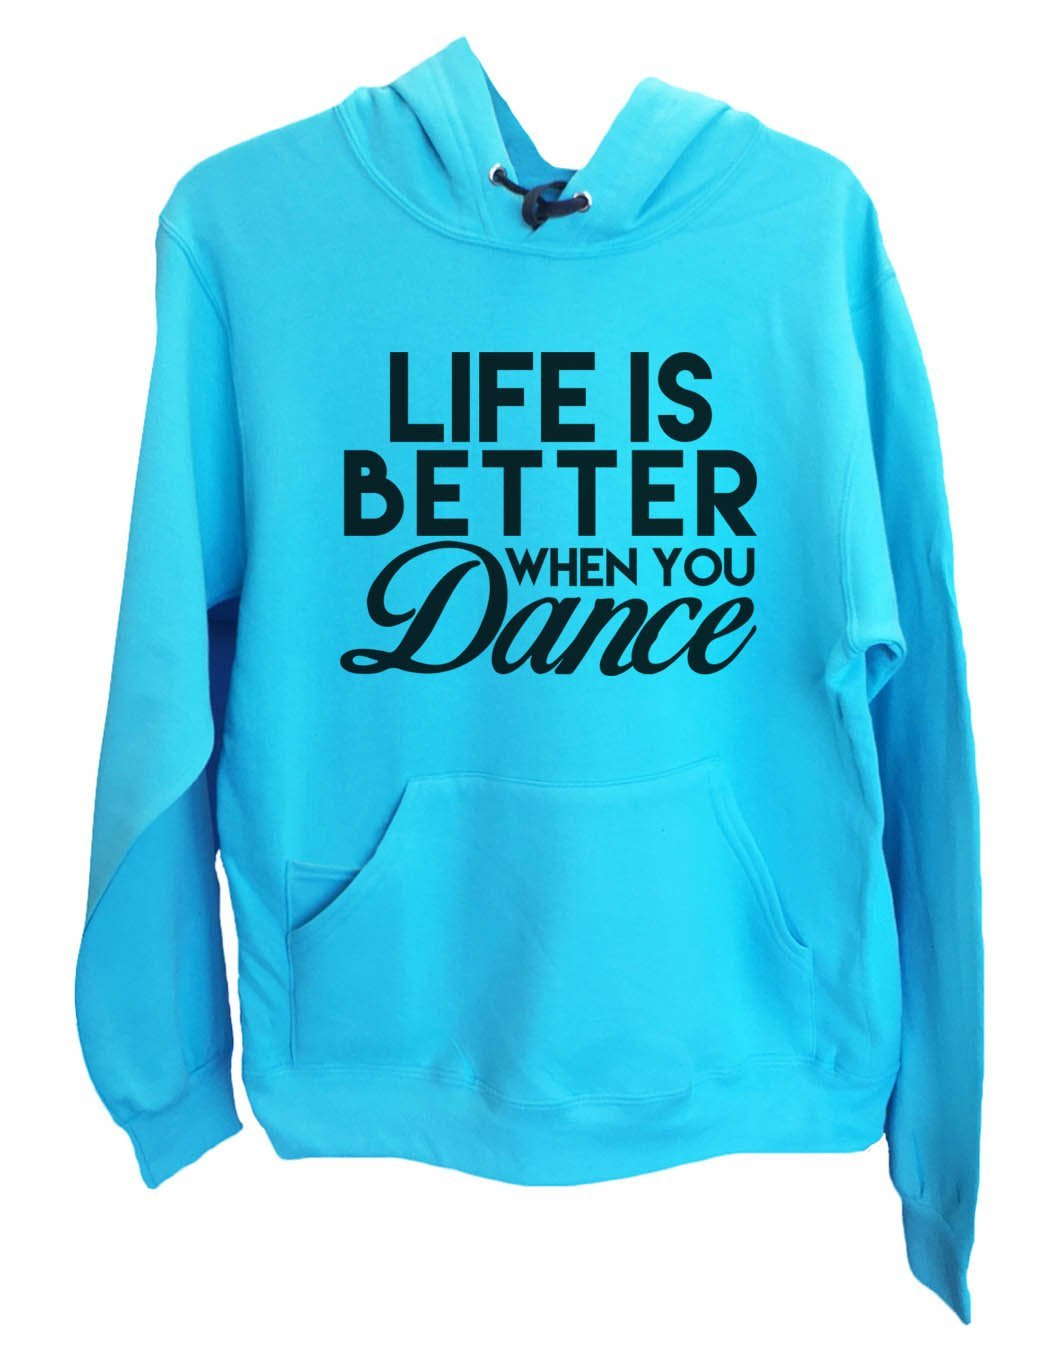 UNISEX HOODIE - Life Is Better When Dance - FUNNY MENS AND WOMENS HOODED SWEATSHIRTS - 2127 Funny Shirt